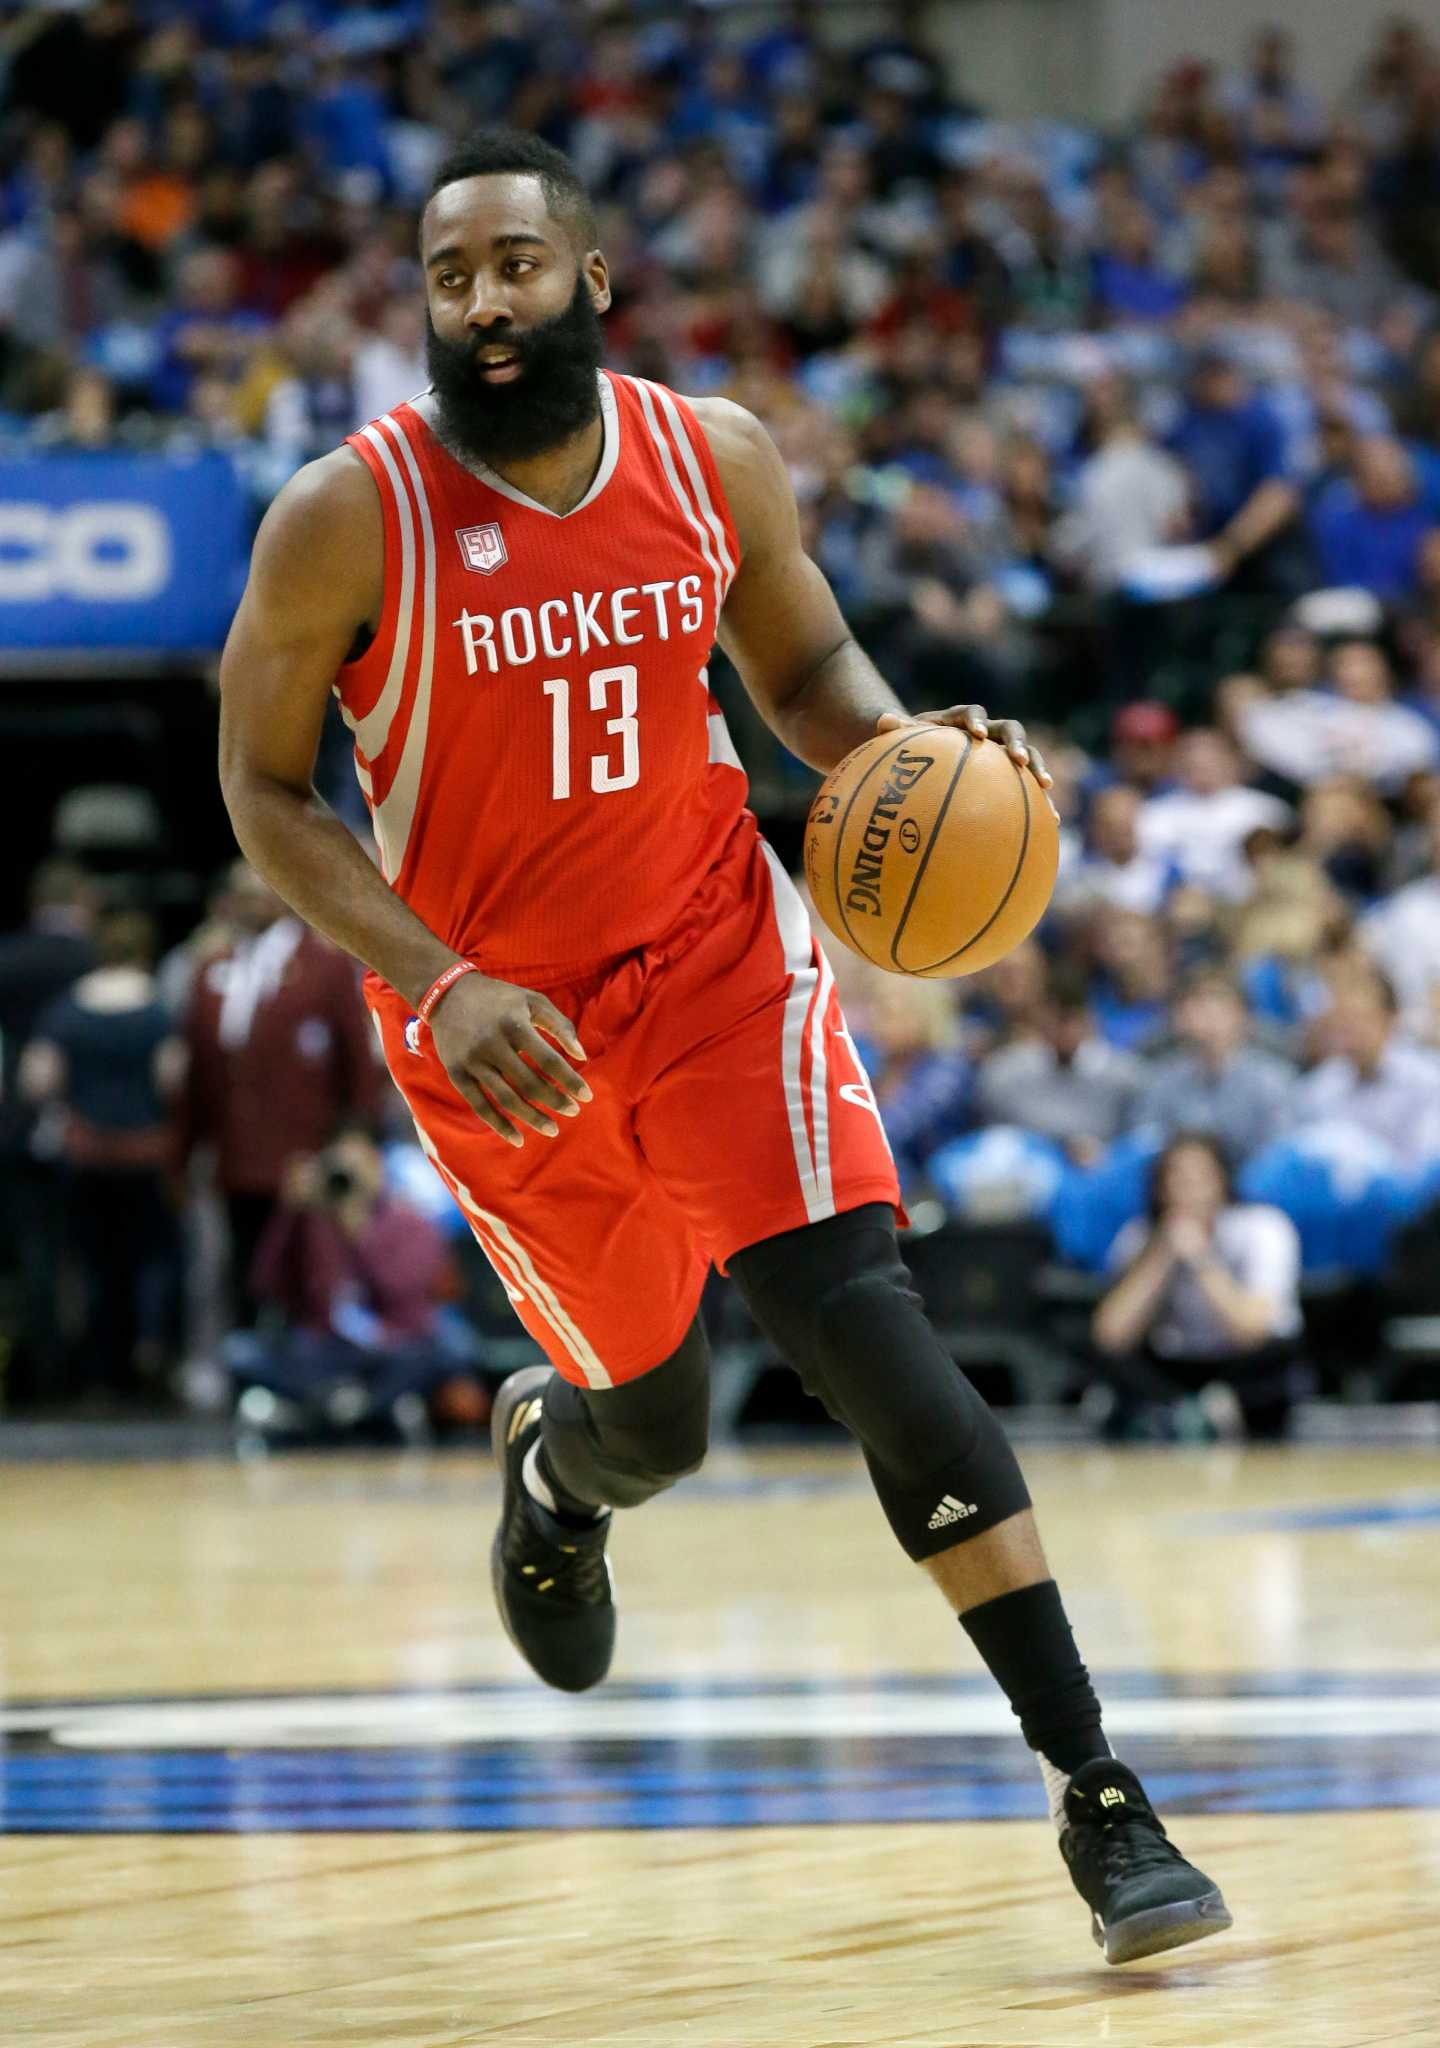 Rockets James Harden earns starting berth in NBA All-Star Game -  HoustonChronicle.com